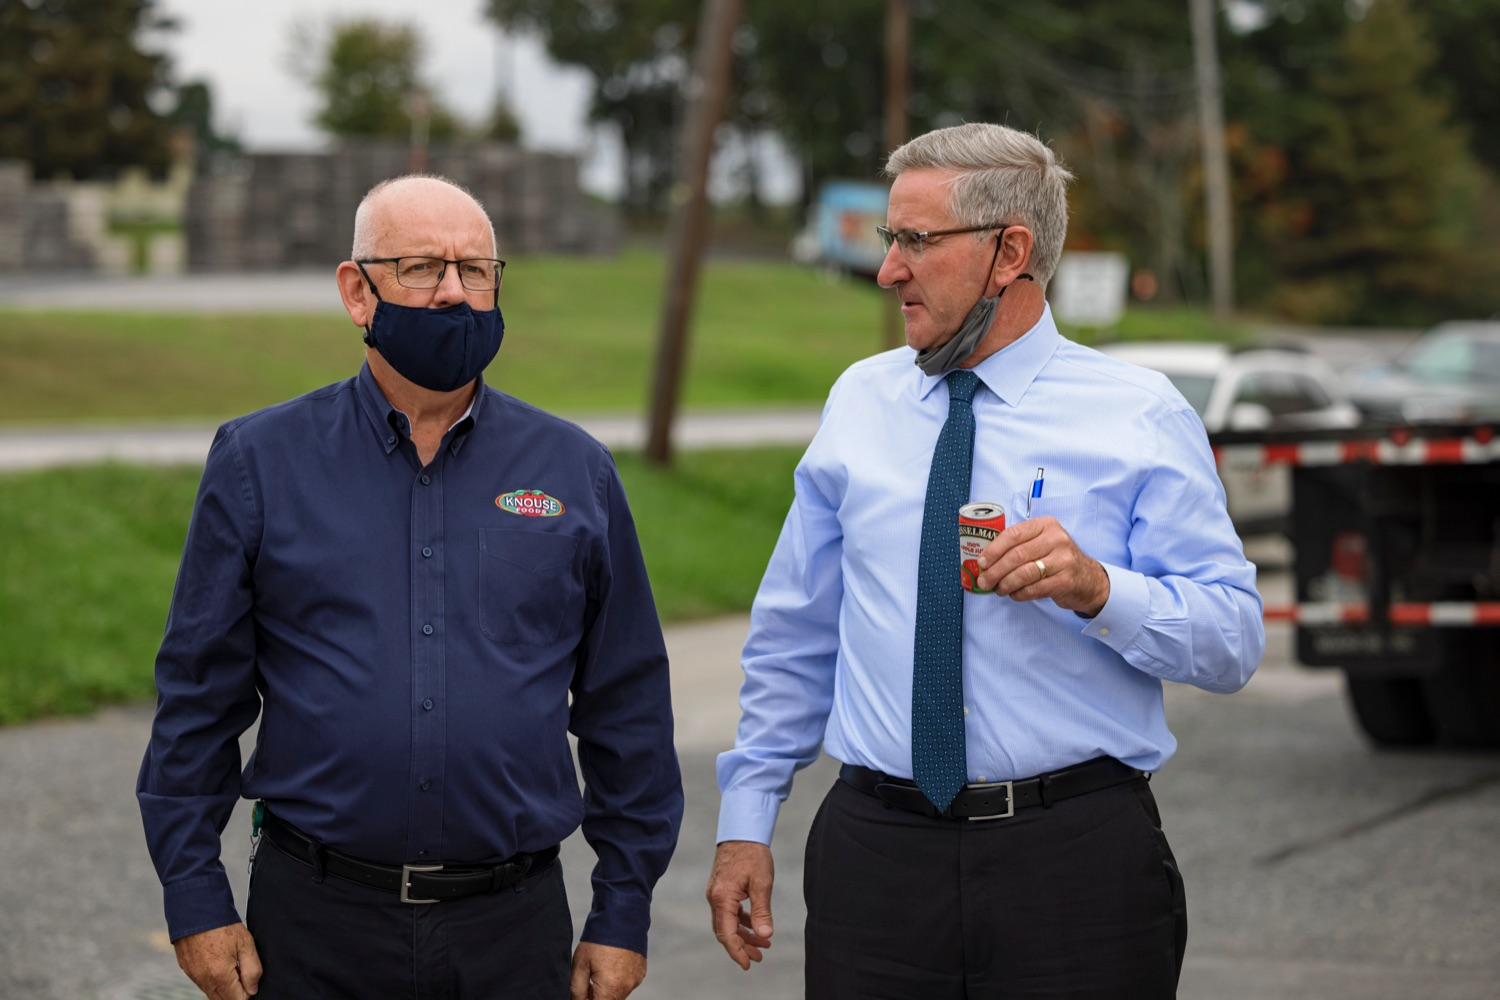 """<a href=""""https://filesource.wostreaming.net/commonwealthofpa/photo/20111_AGRIC_Food_Fuels_NK_010.JPG"""" target=""""_blank"""">⇣Download Photo<br></a>Larry Martin, CEO of Knouse Foods, left, talks with Agriculture Secretary Russell Redding during a press conference, which highlighted Pennsylvanias agriculture and food manufacturing industry at Knouse Foods, kicking off the Food that Fuels Pennsylvania tour, a plan to spotlight the commonwealths agriculture and food manufacturing industry and its workforce, on Wednesday, October 13, 2021."""